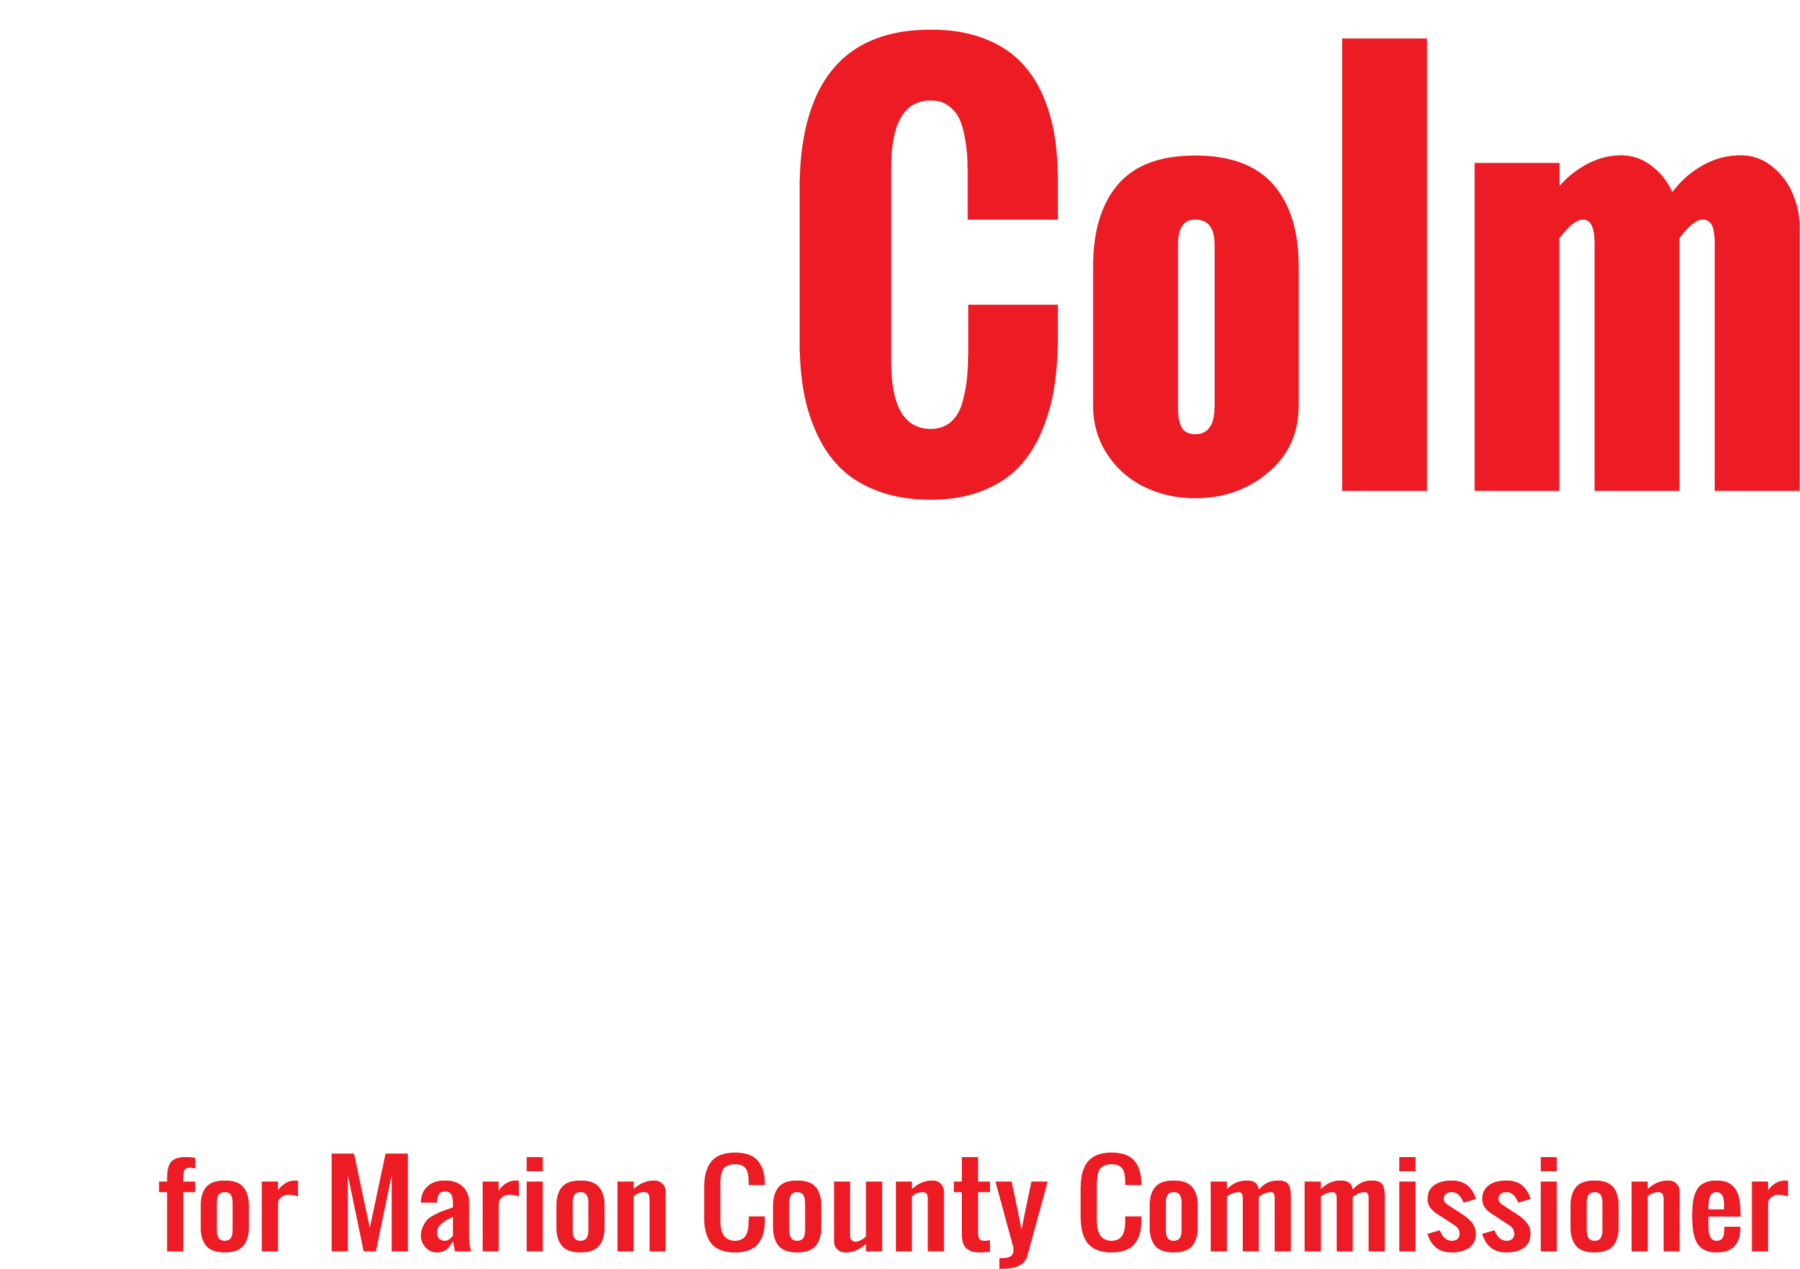 Colm Willis for Oregon: General Fund